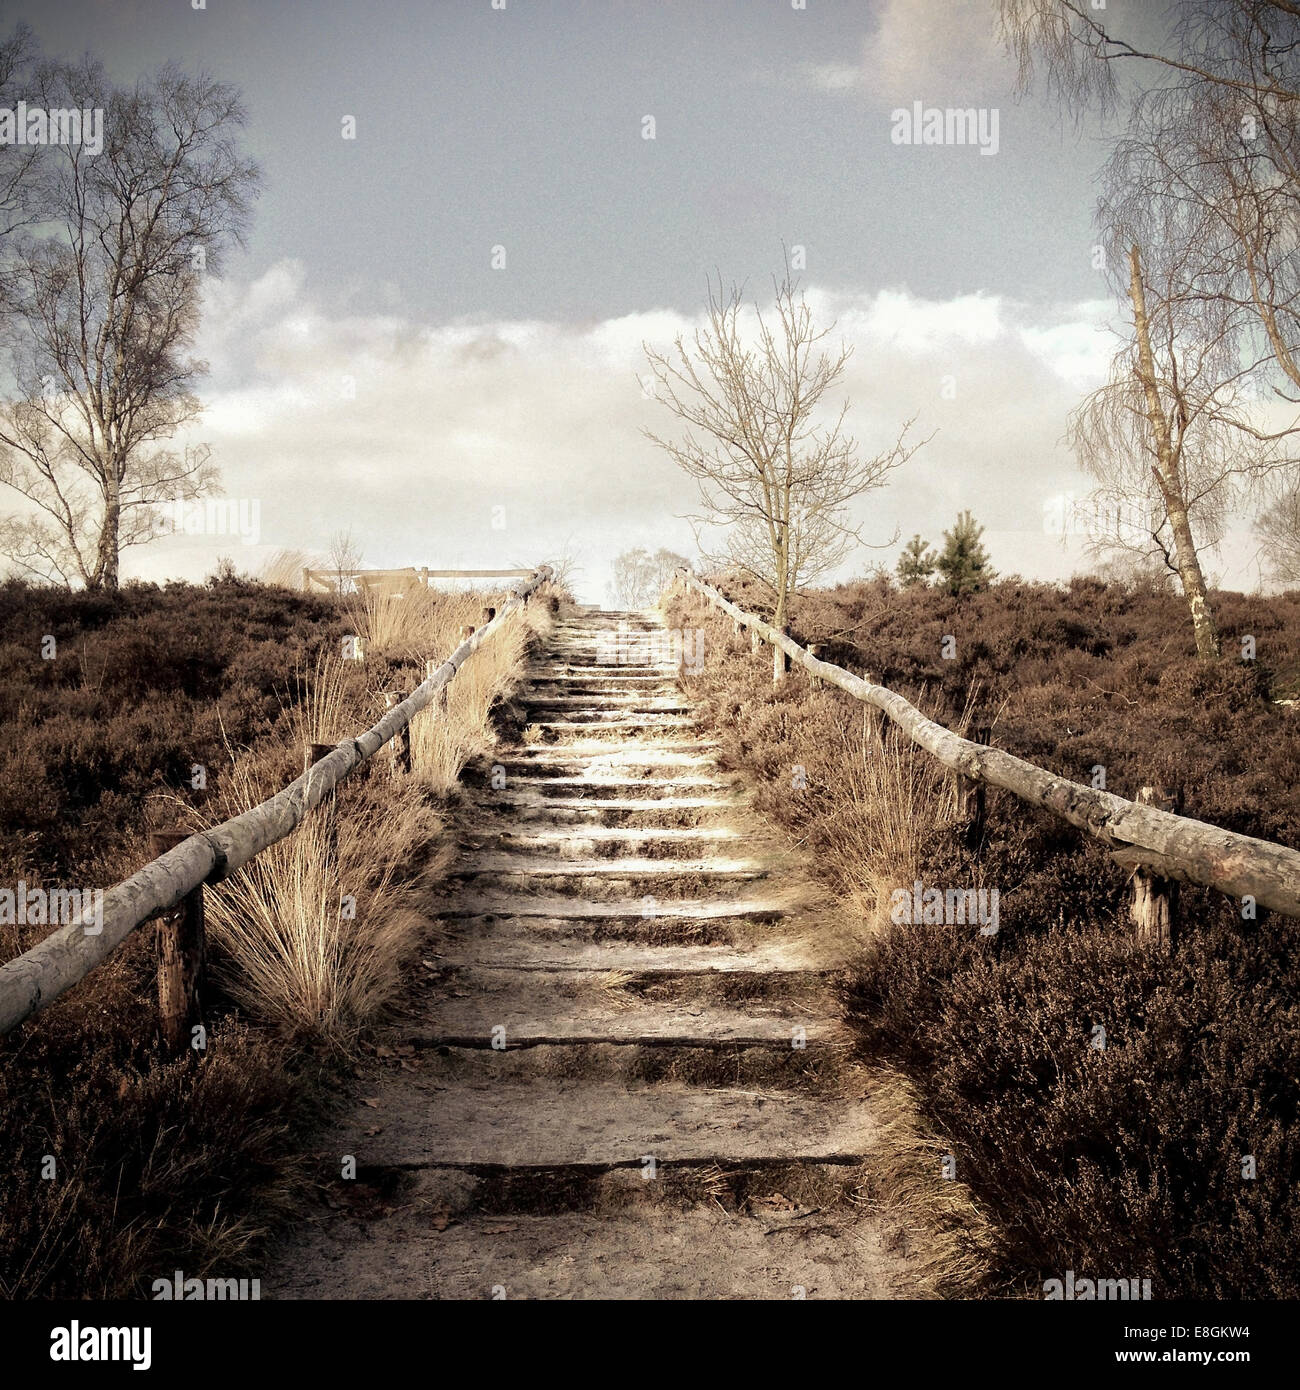 Outdoor steps leading to top of hill - Stock Image